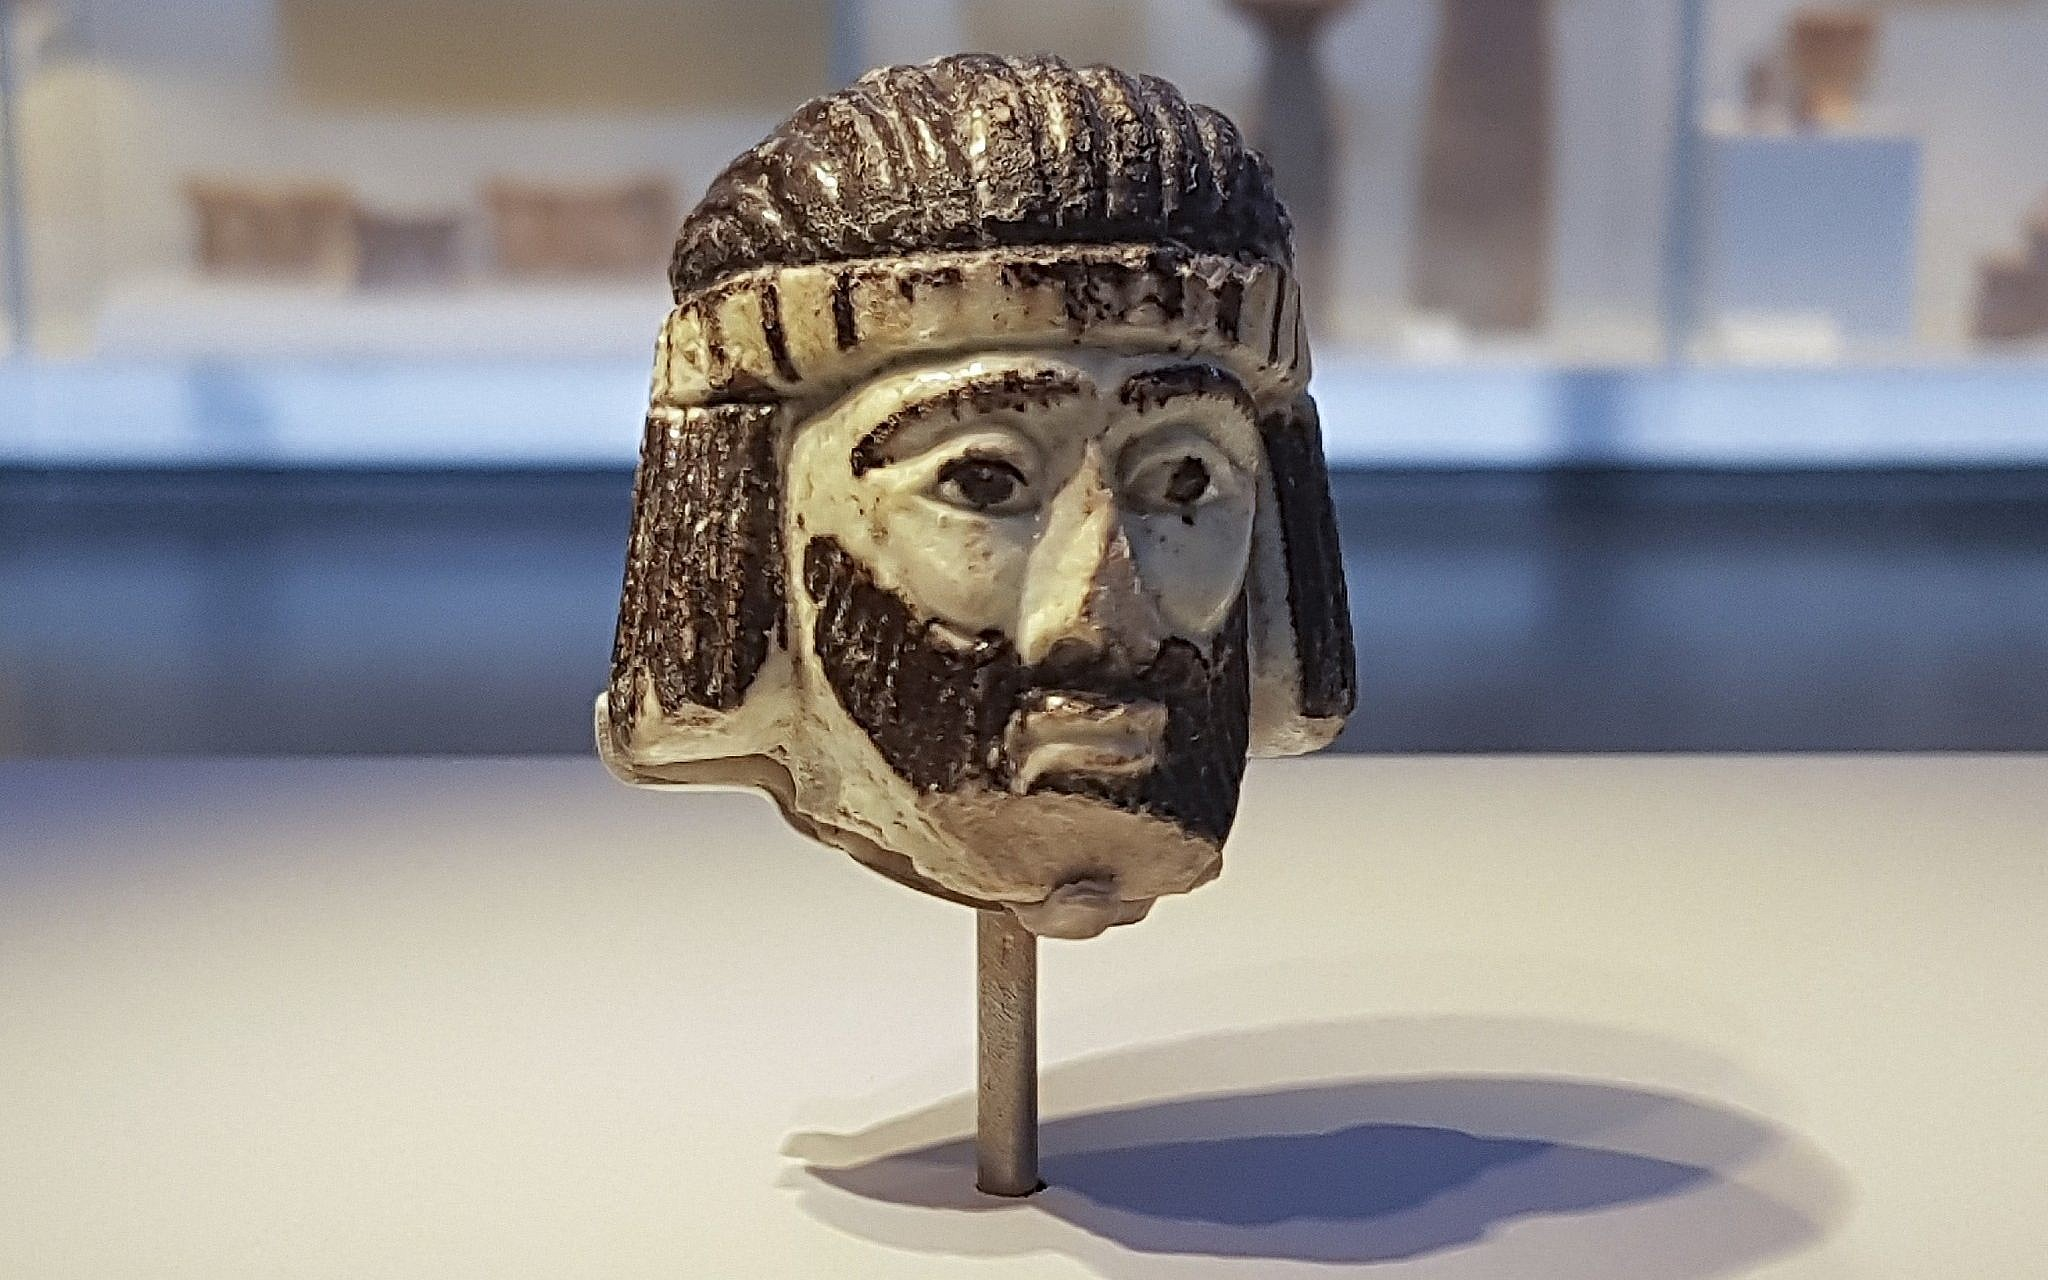 bible character figurines king who? rare sculpted head of mystery biblical ruler found